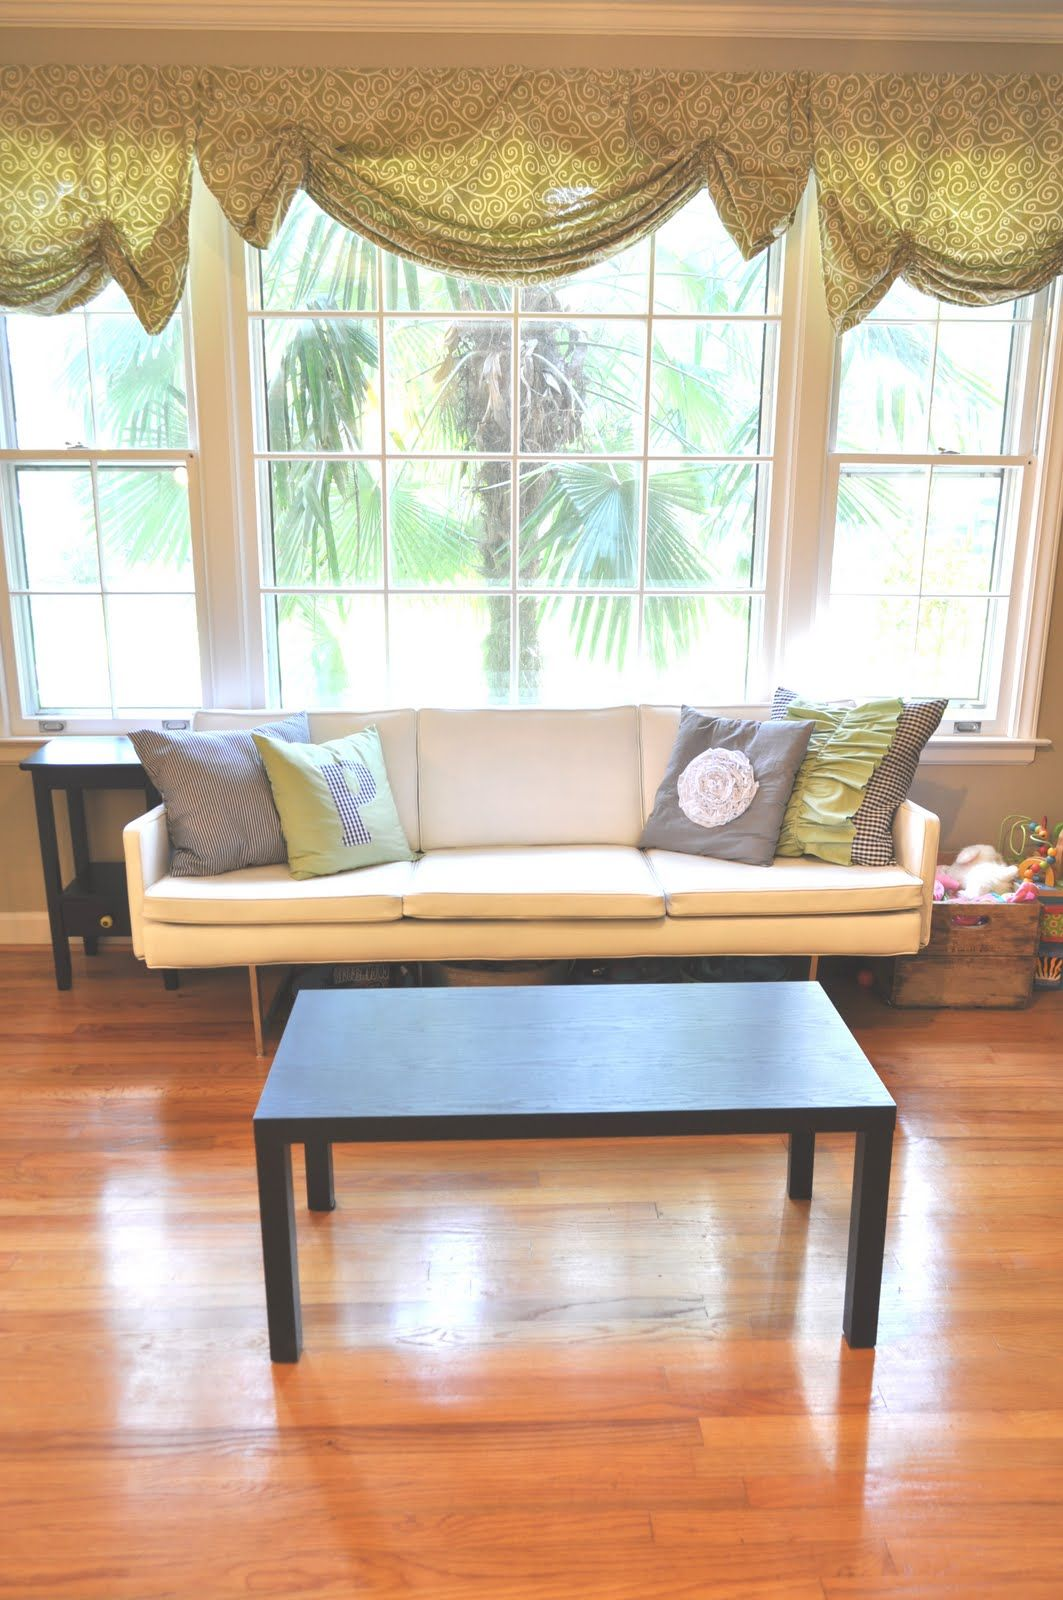 spray paint for leather sofa sectional affordable johnny in a dress your diy